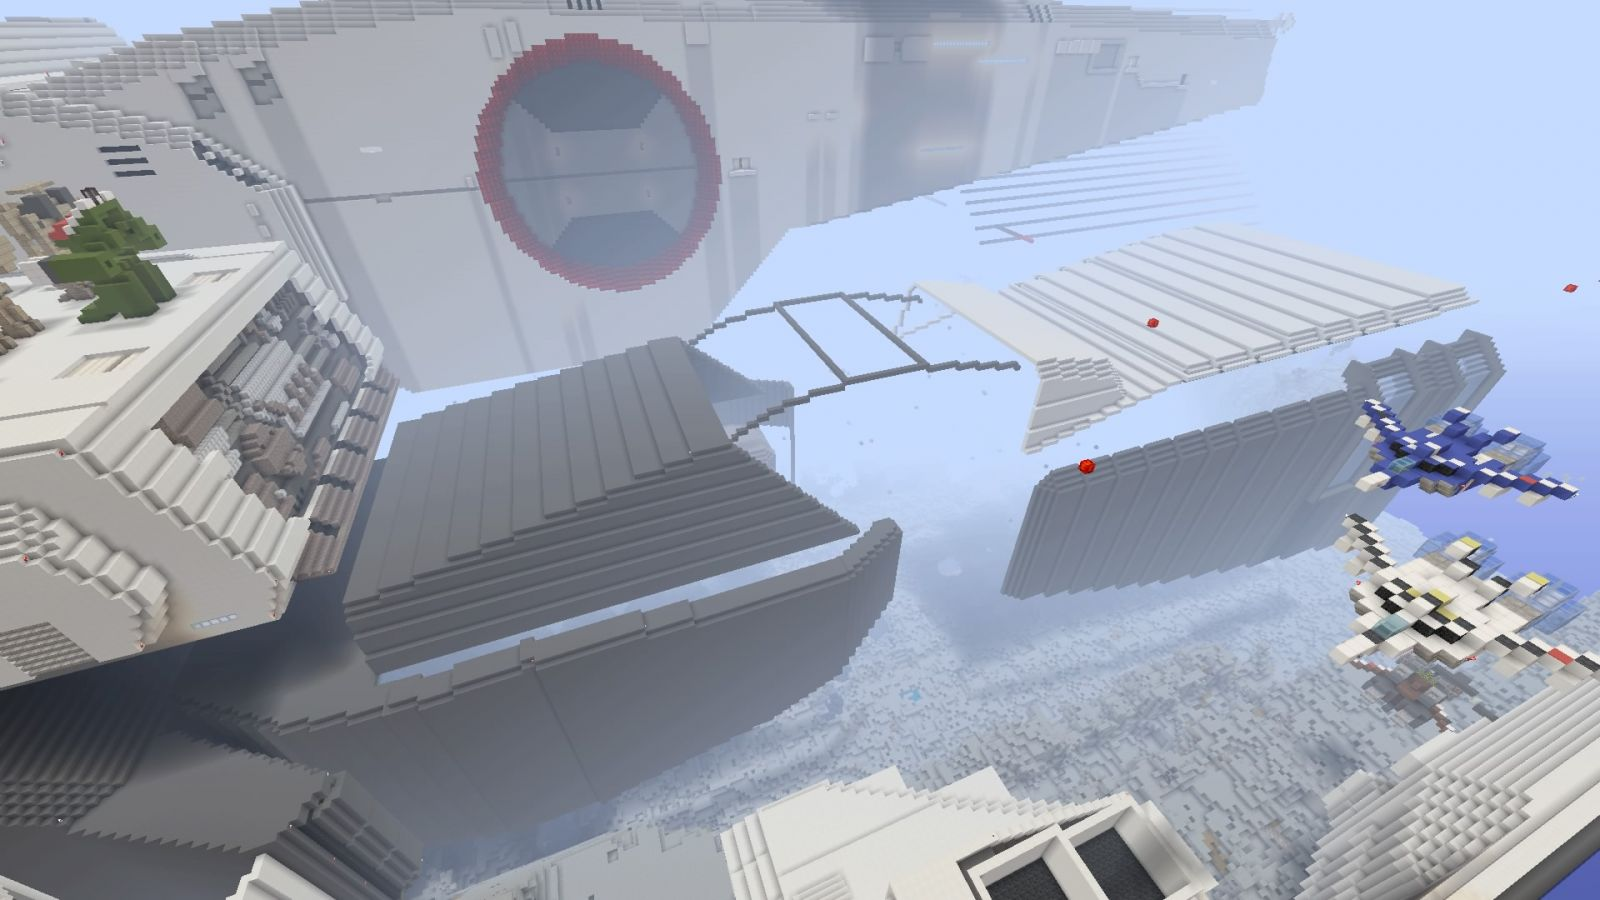 Macross Minecraft Updates 2-22-16